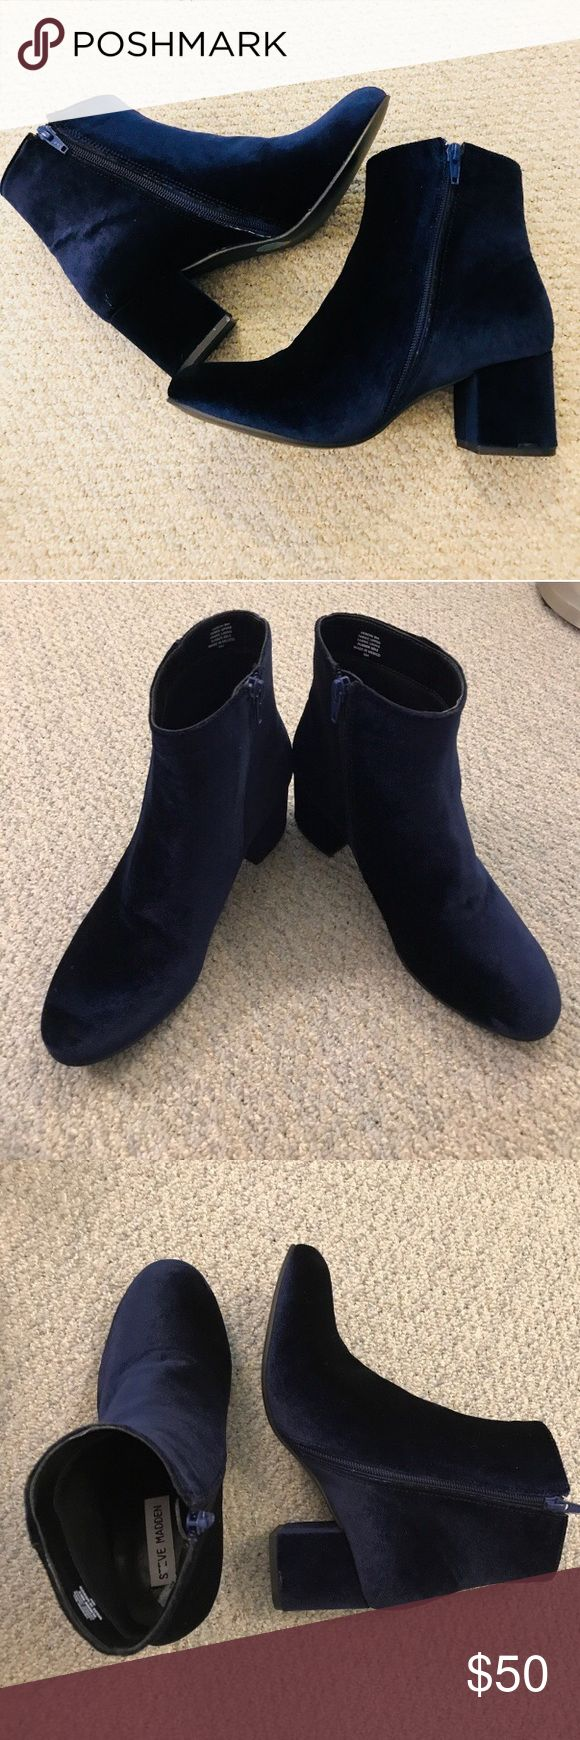 """Steve Madden Velvet Booties Navy velvet booties, NWOT, true size 8. 2"""" heel height. I purchased on Posh and they are new. They are so cute but I have small ankles with big calves and they don't look good on my legs. Perfect for the holidays and after, dress up or down. Steve Madden Shoes Ankle Boots & Booties"""